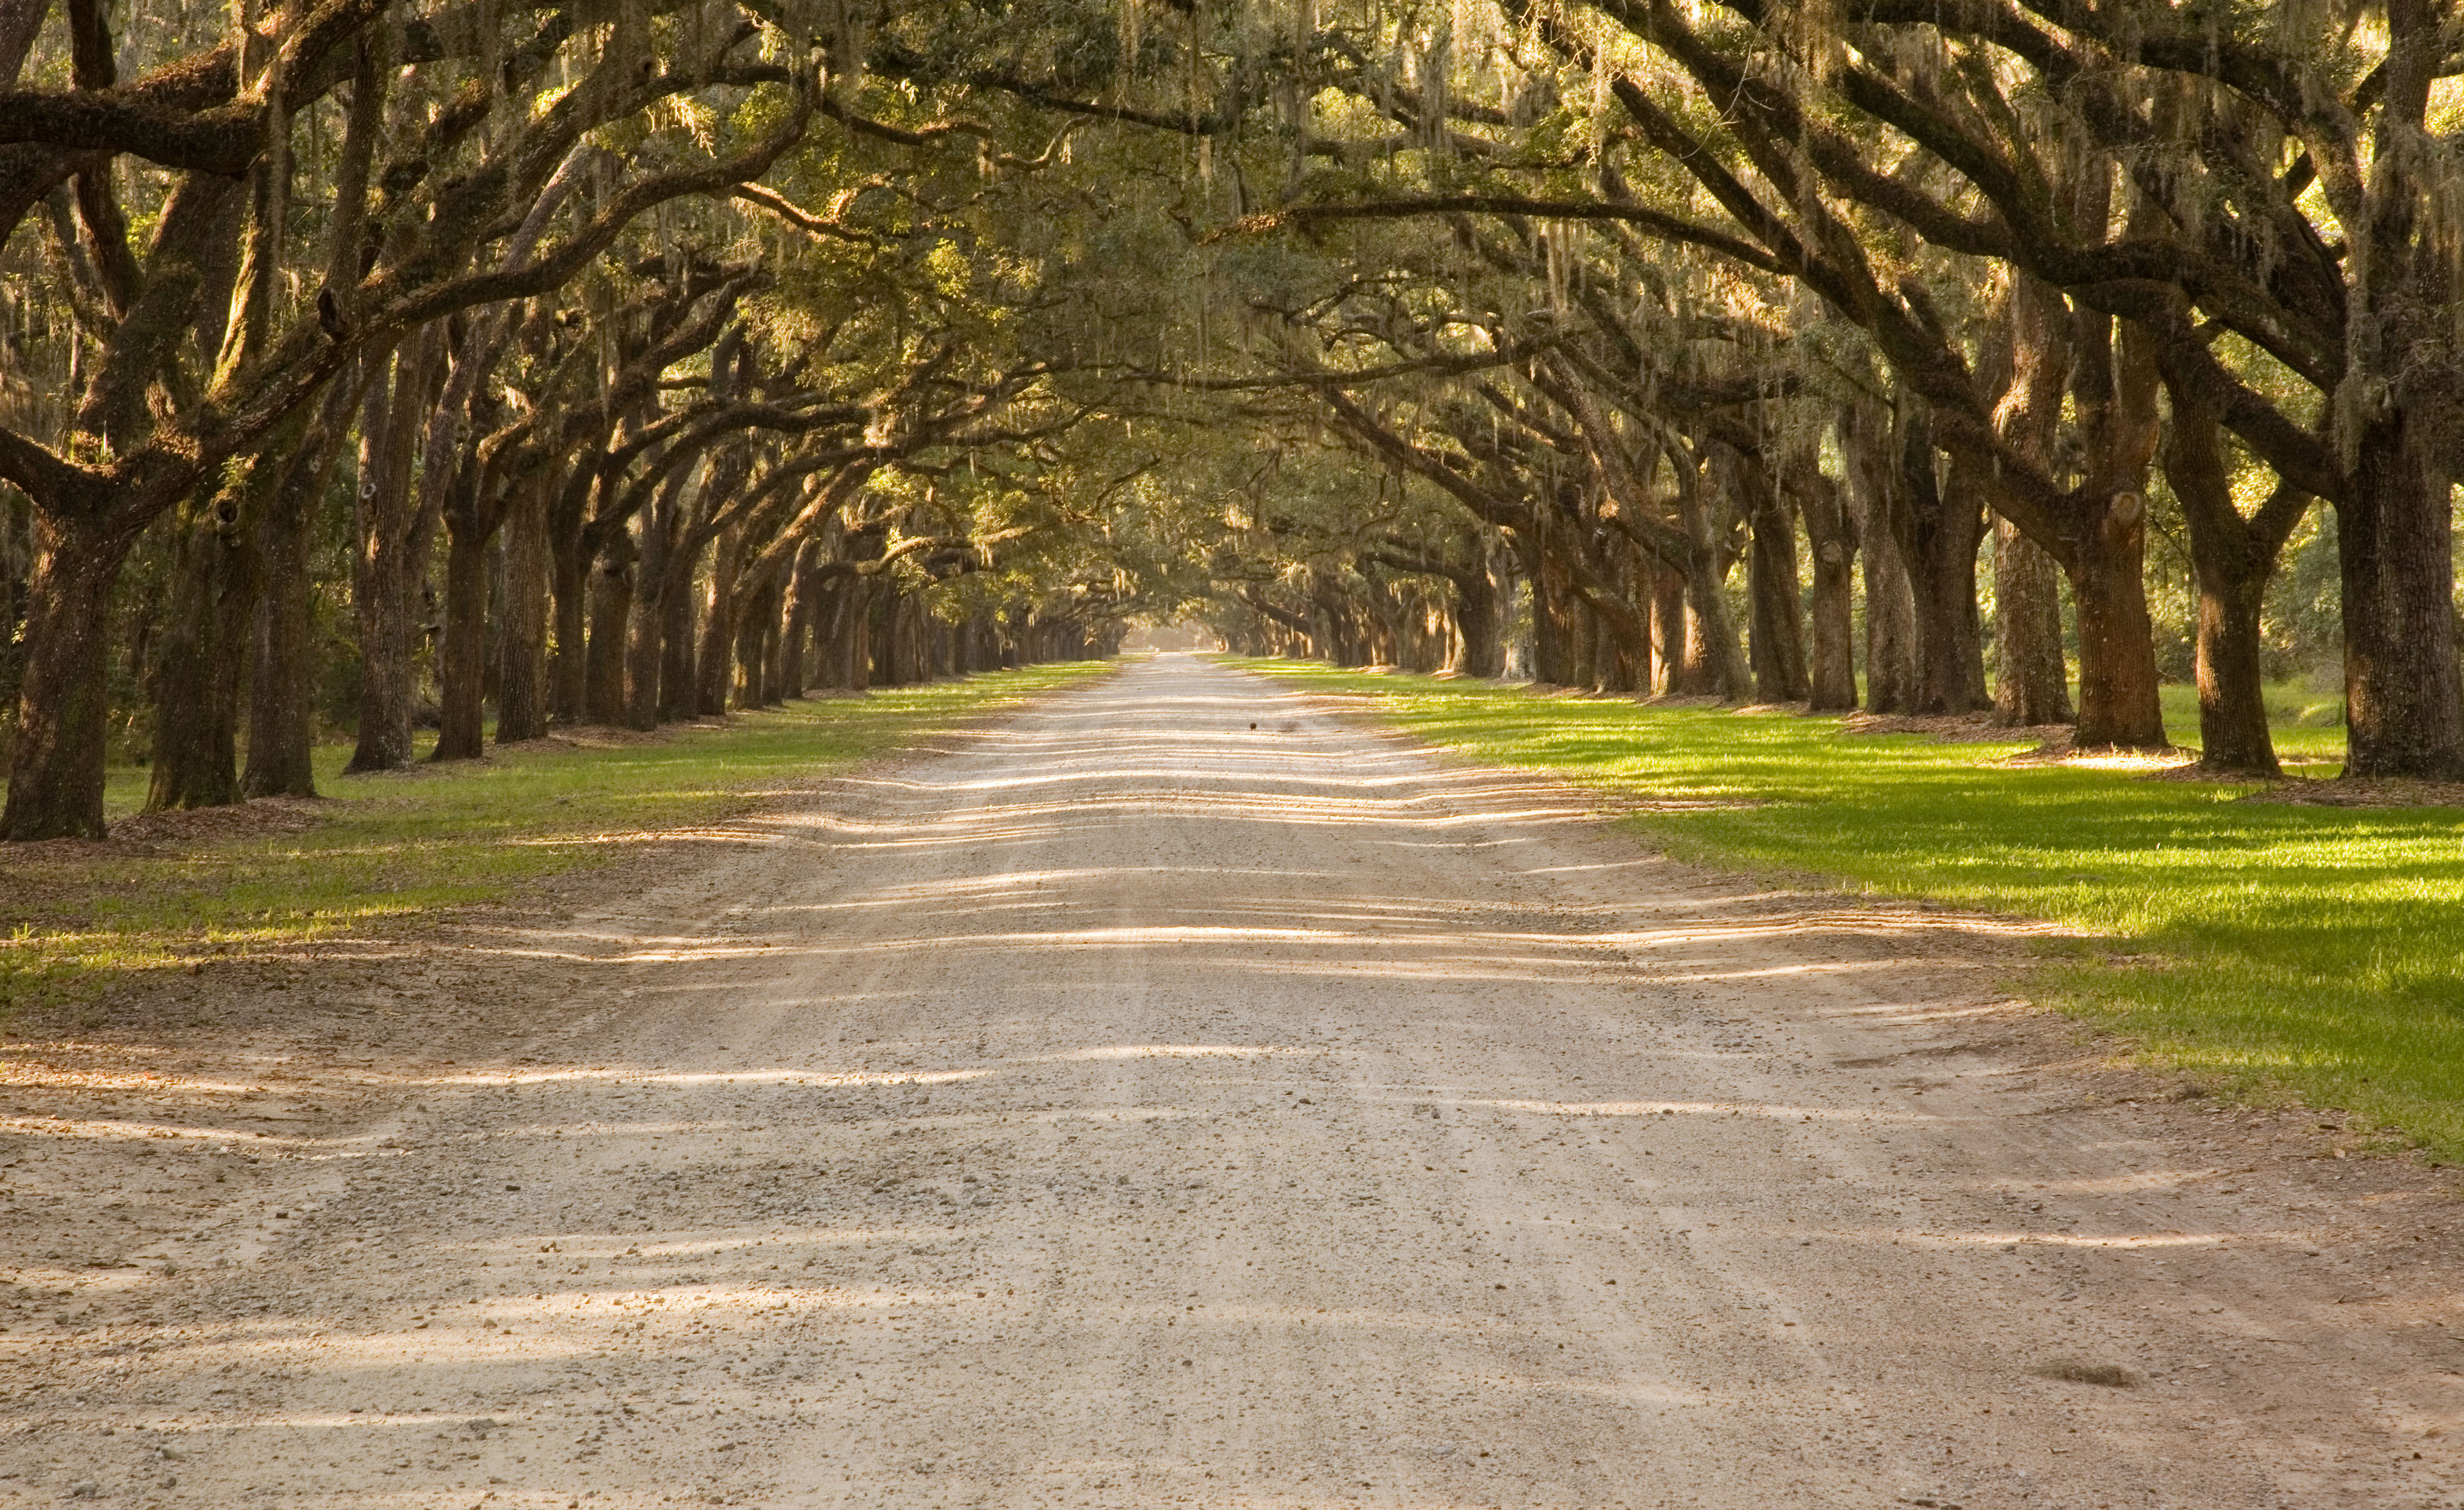 Photo of a Wormsloe Park